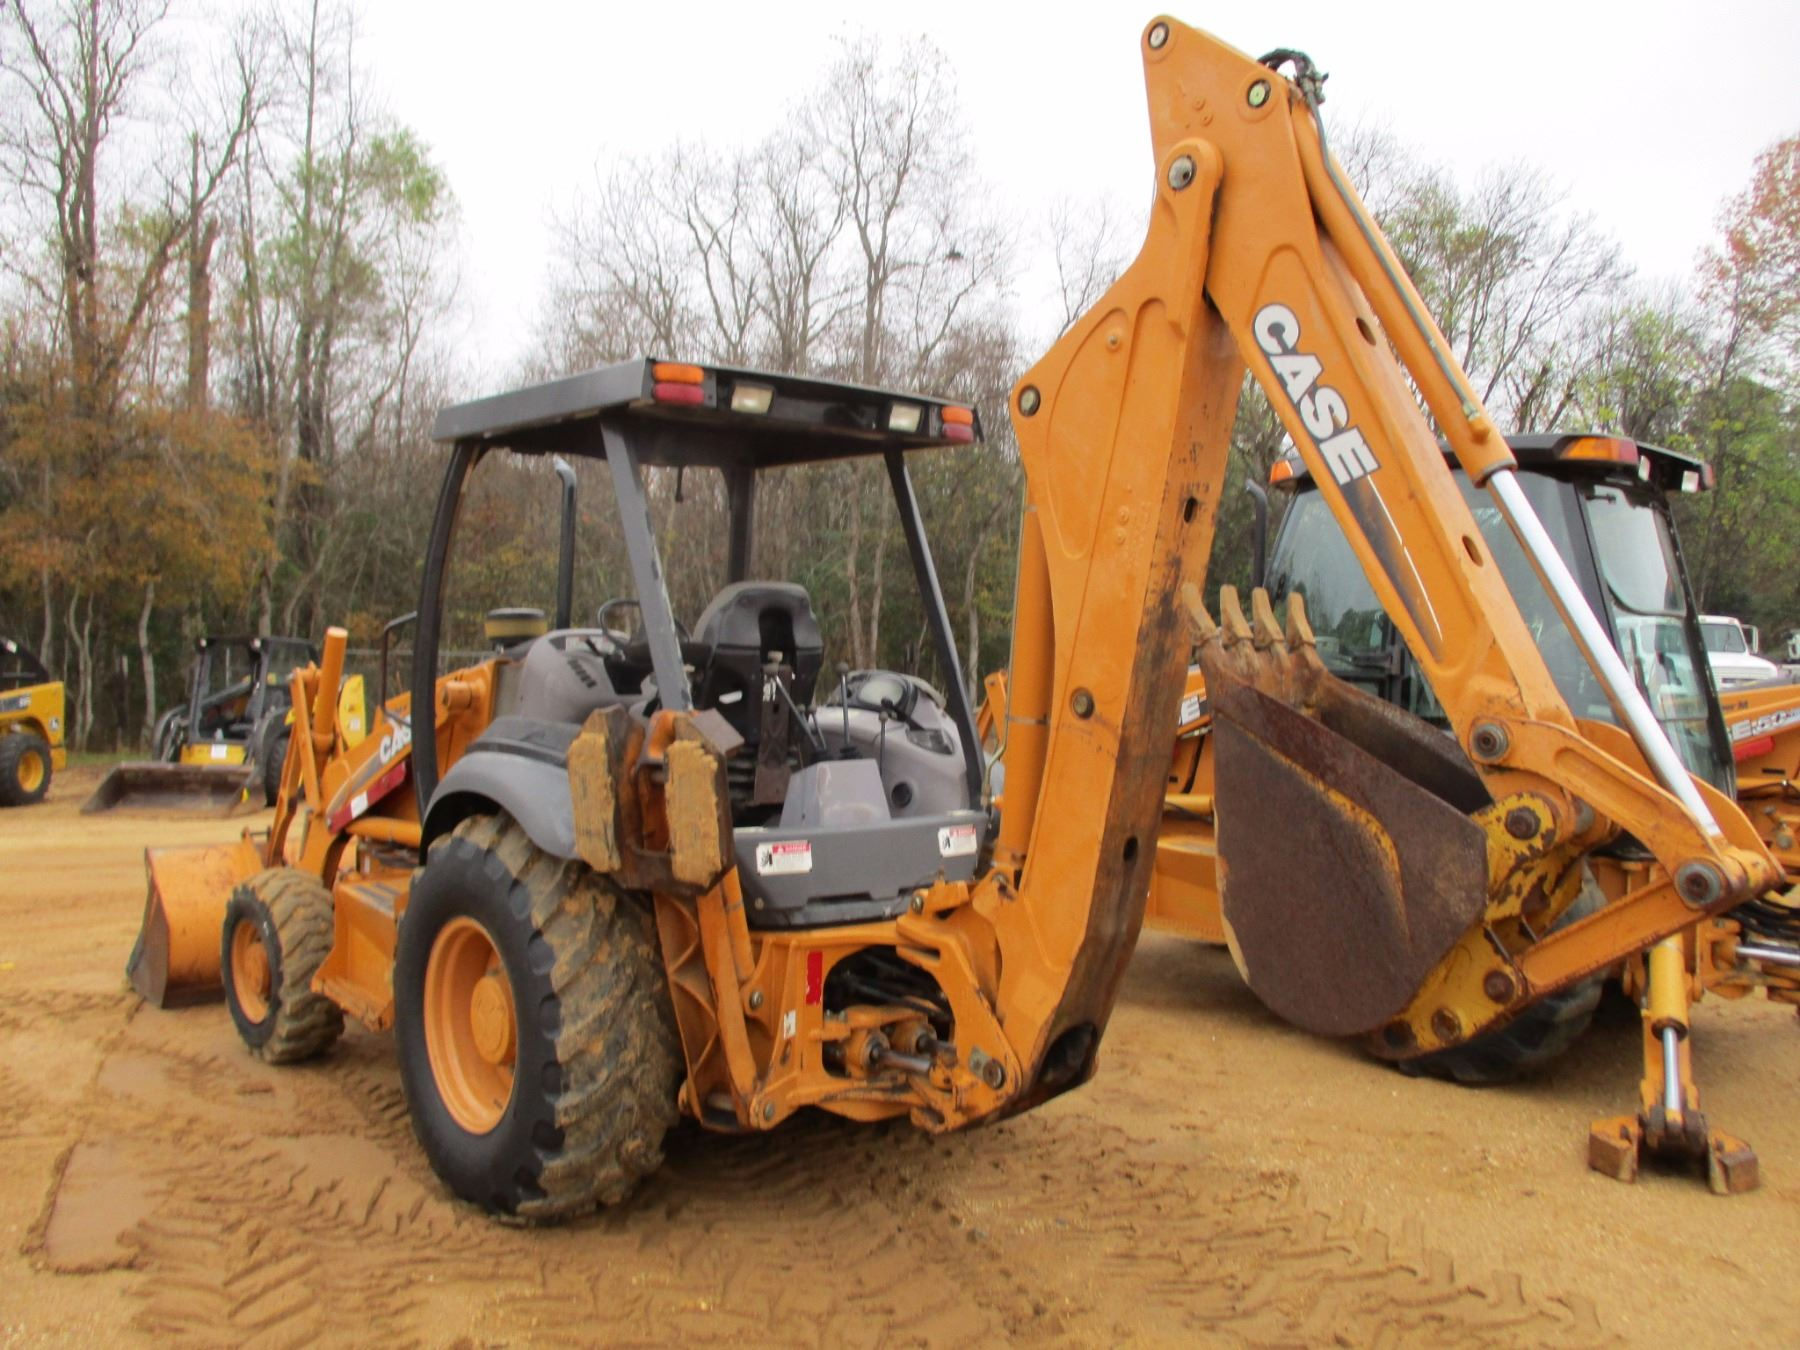 hight resolution of  image 4 2003 case 580m loader backhoe vin sn jjg0309088 4x4